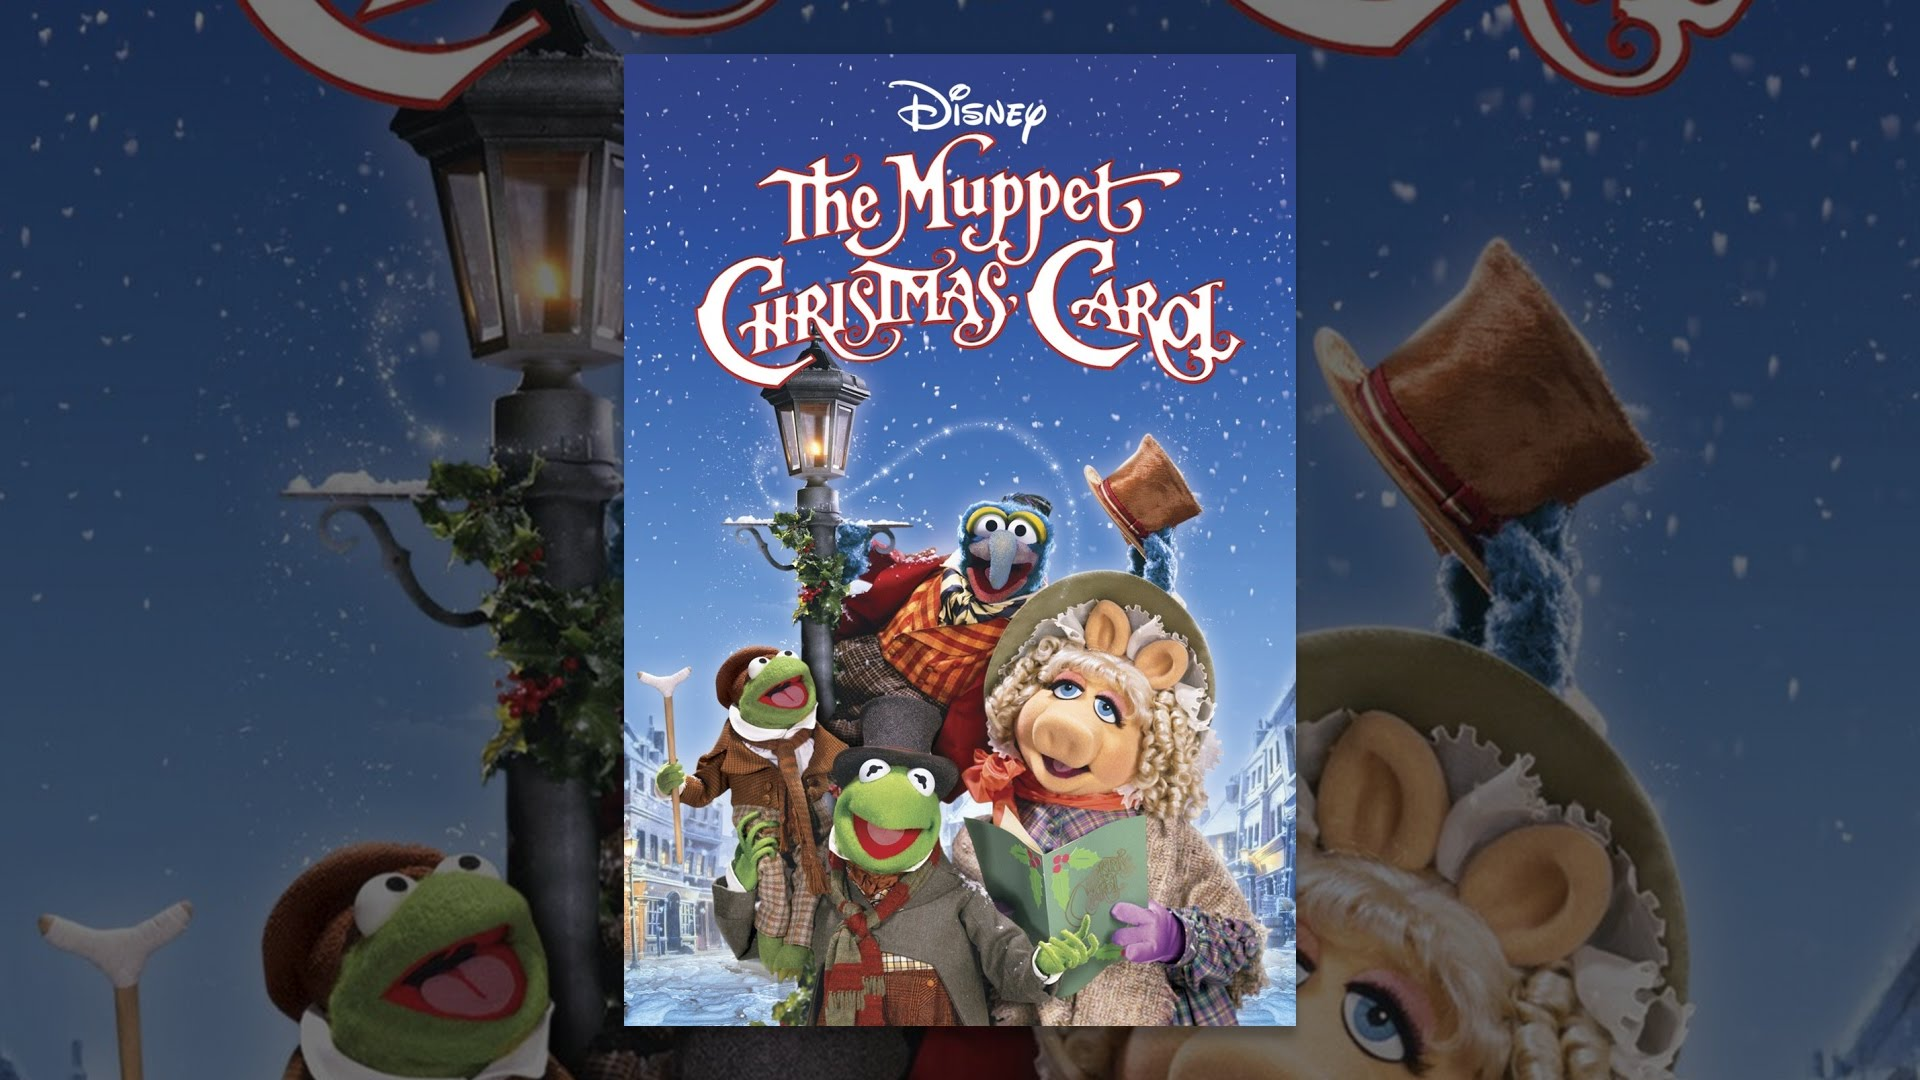 the muppet christmas carol youtube movies - Muppets Christmas Carol Youtube